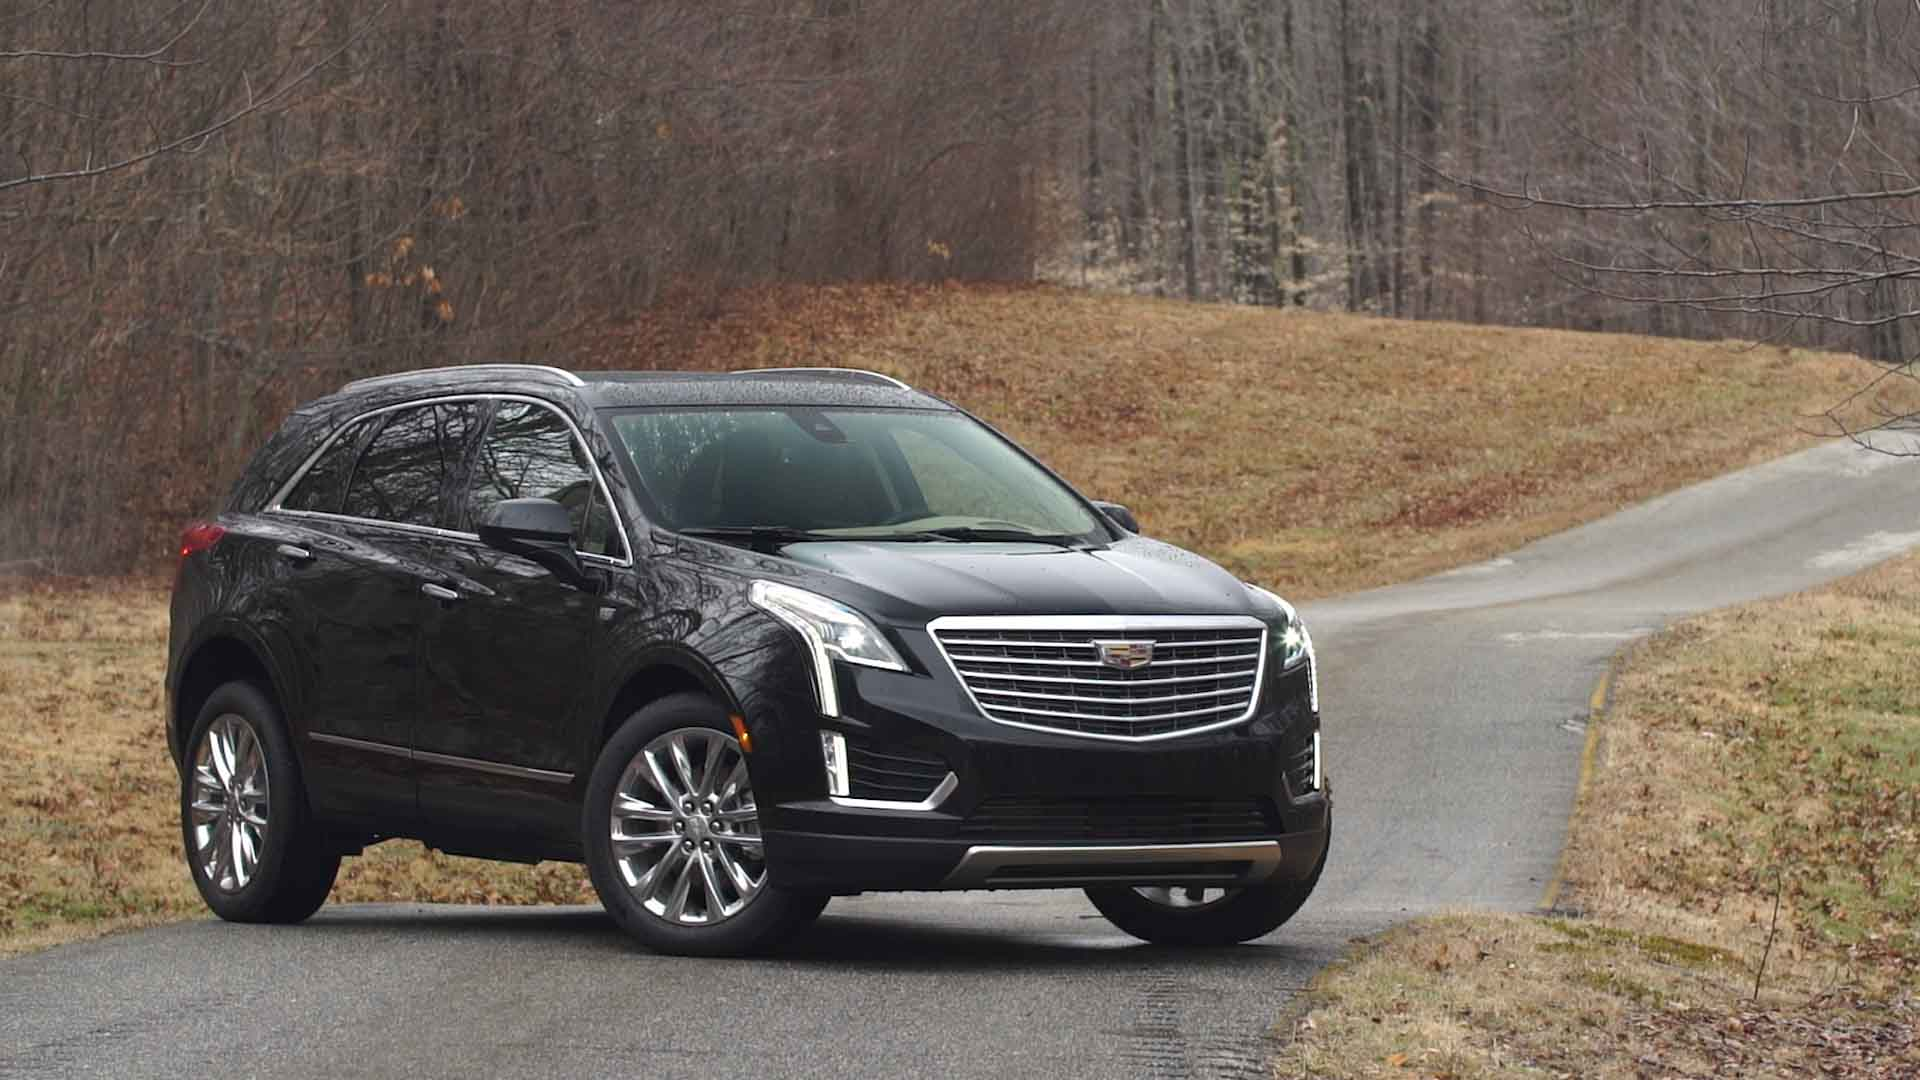 Cadillac Xt5 Loses Weight Adds Luxury